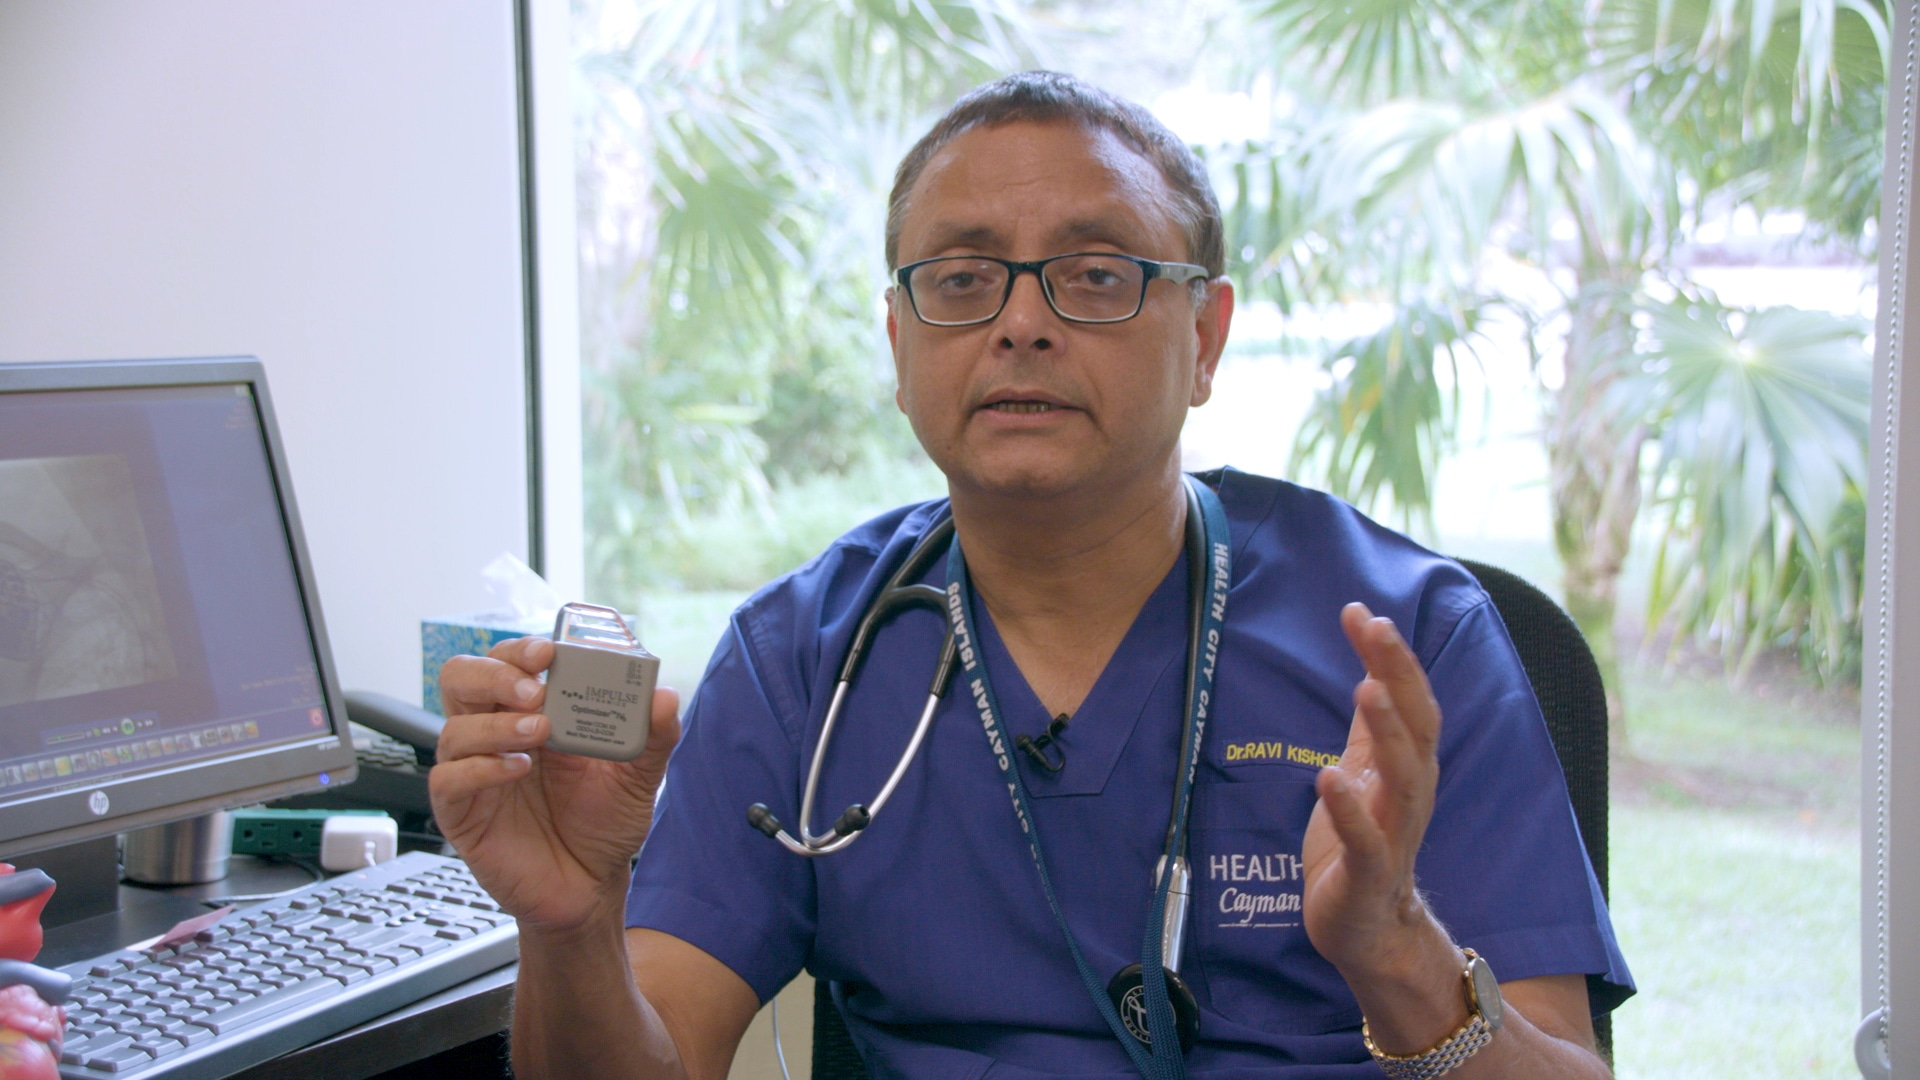 Dr Ravi Kishore Chief Interventional Cardiologist and Electrophysiologist at Health City